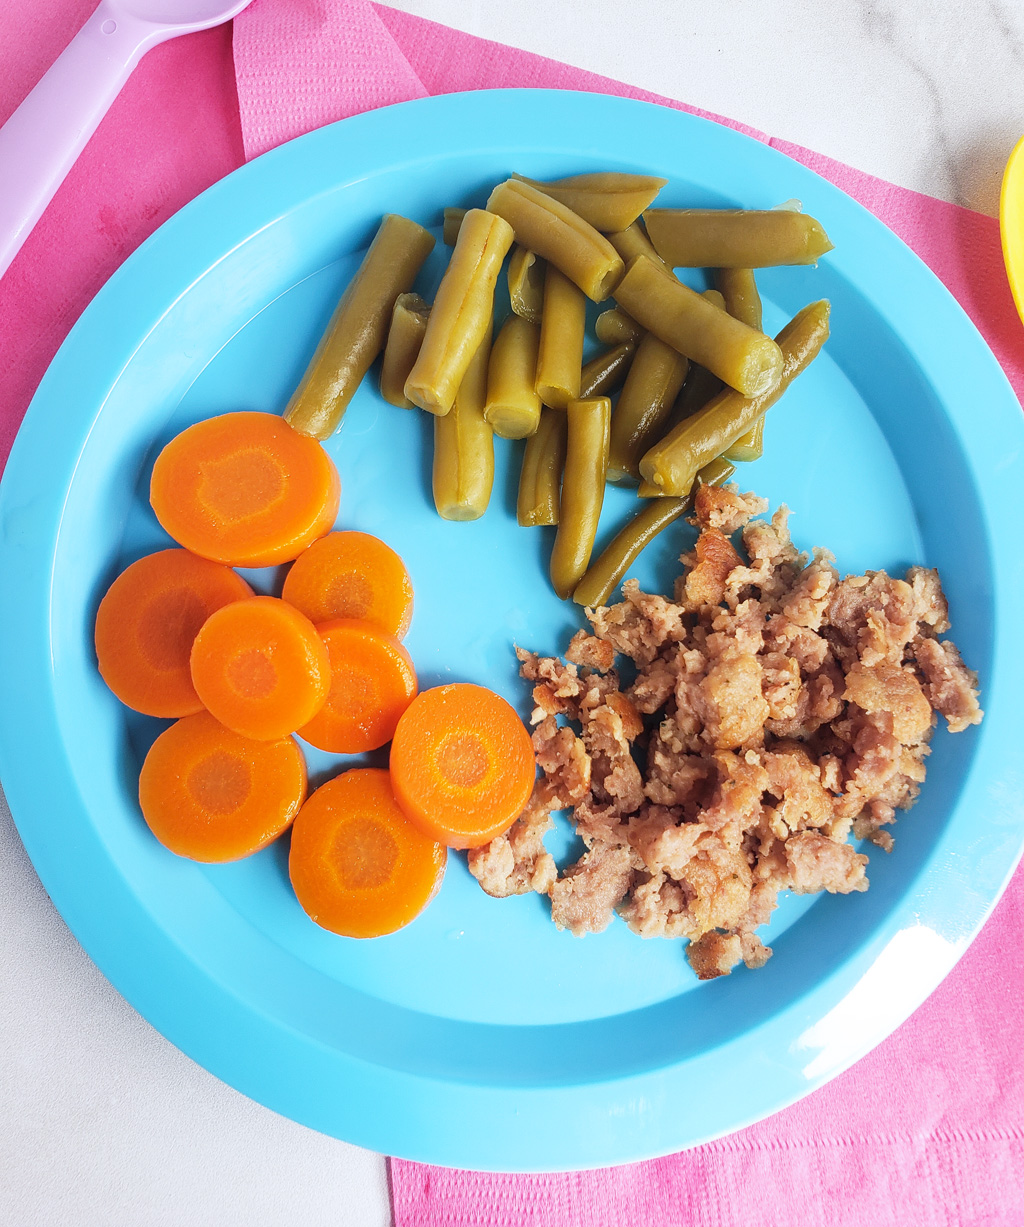 Beef as Baby's First Food? Why Not?! This post is a collaboration with Beef. It's What's for Dinner., on behalf of the Beef Checkoff.